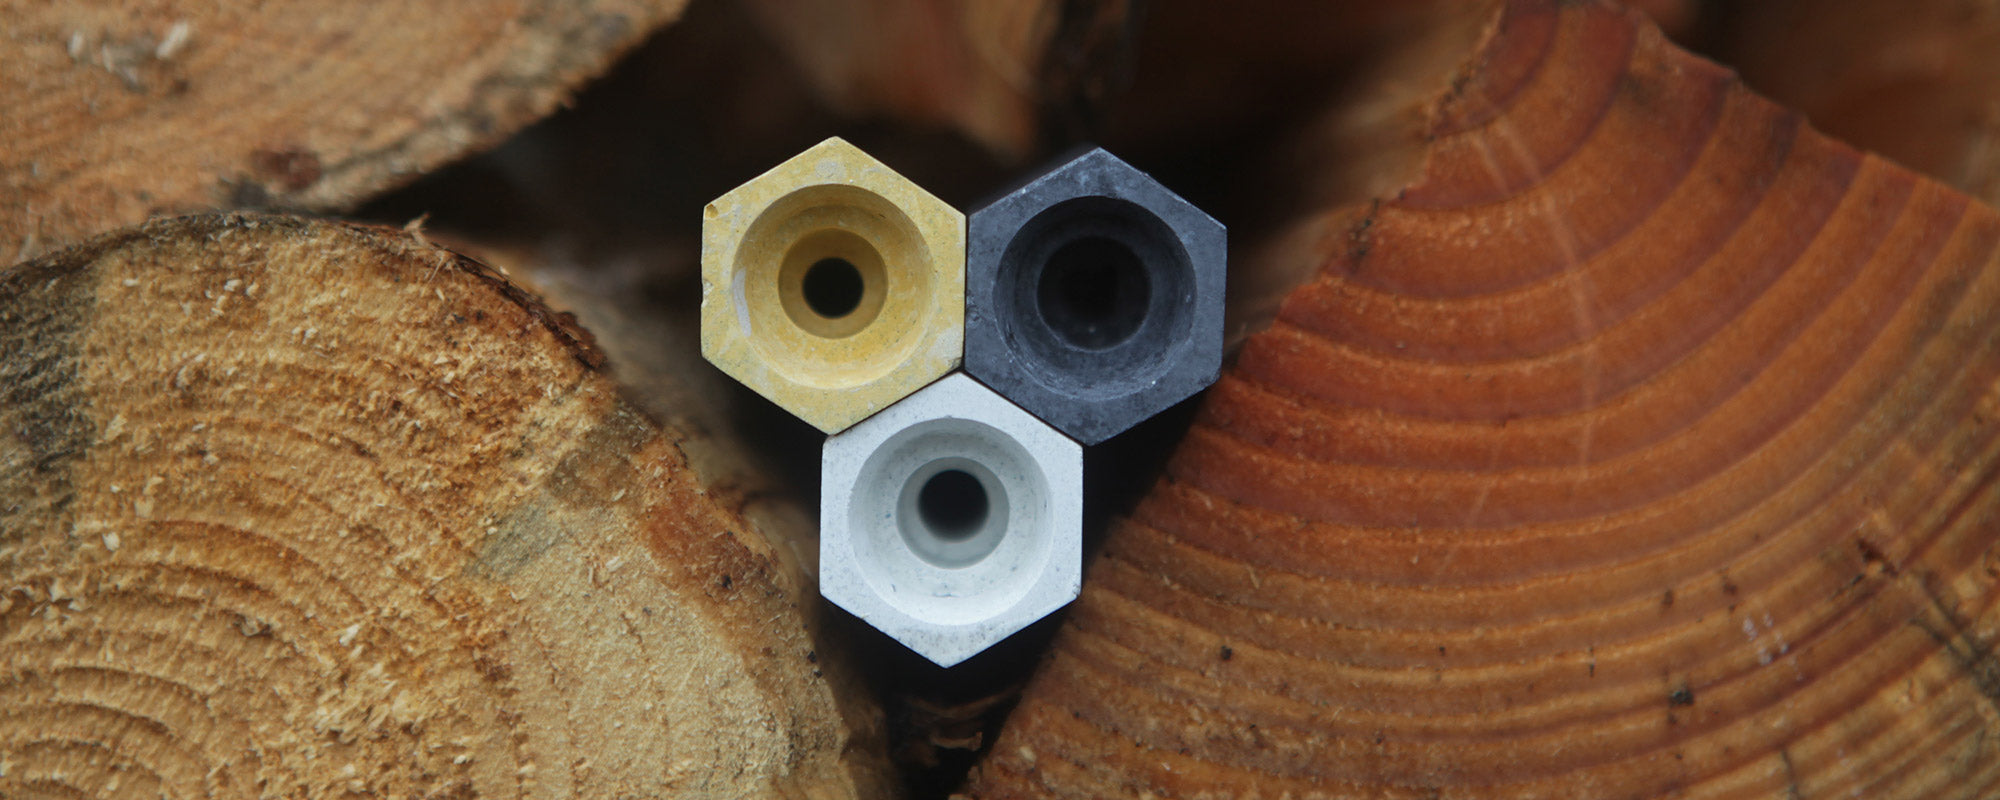 bee cells in wood pile for solitary bees